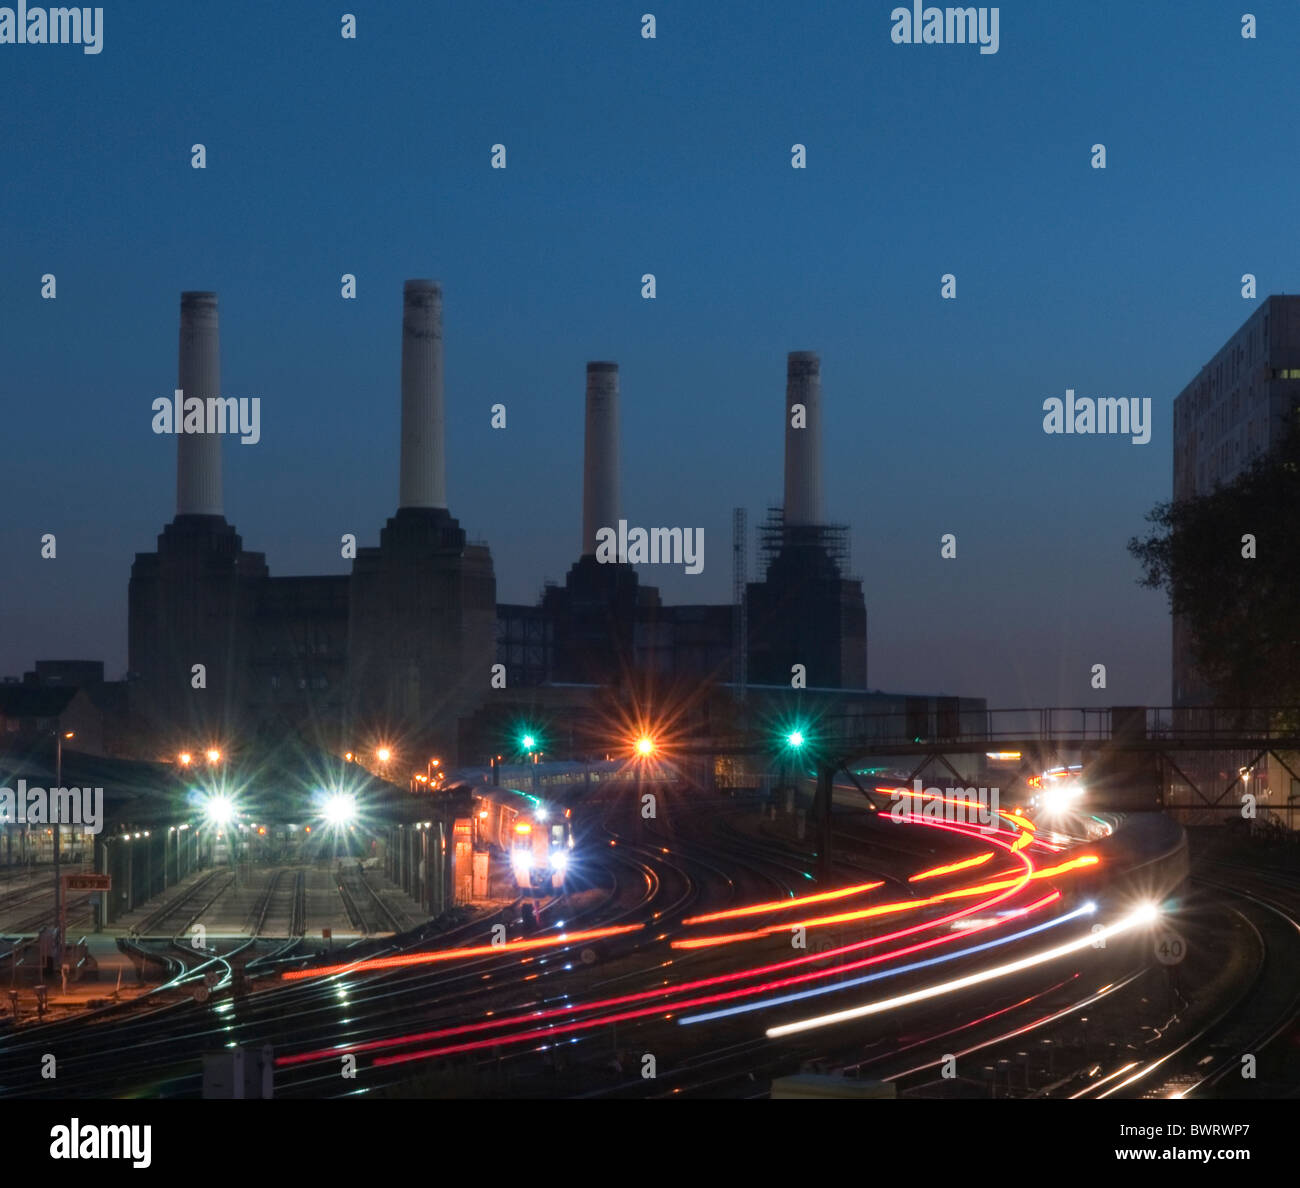 Trains entering and leaving Victoria Station in the evening rush hour with Battersea Power Station in the background. - Stock Image